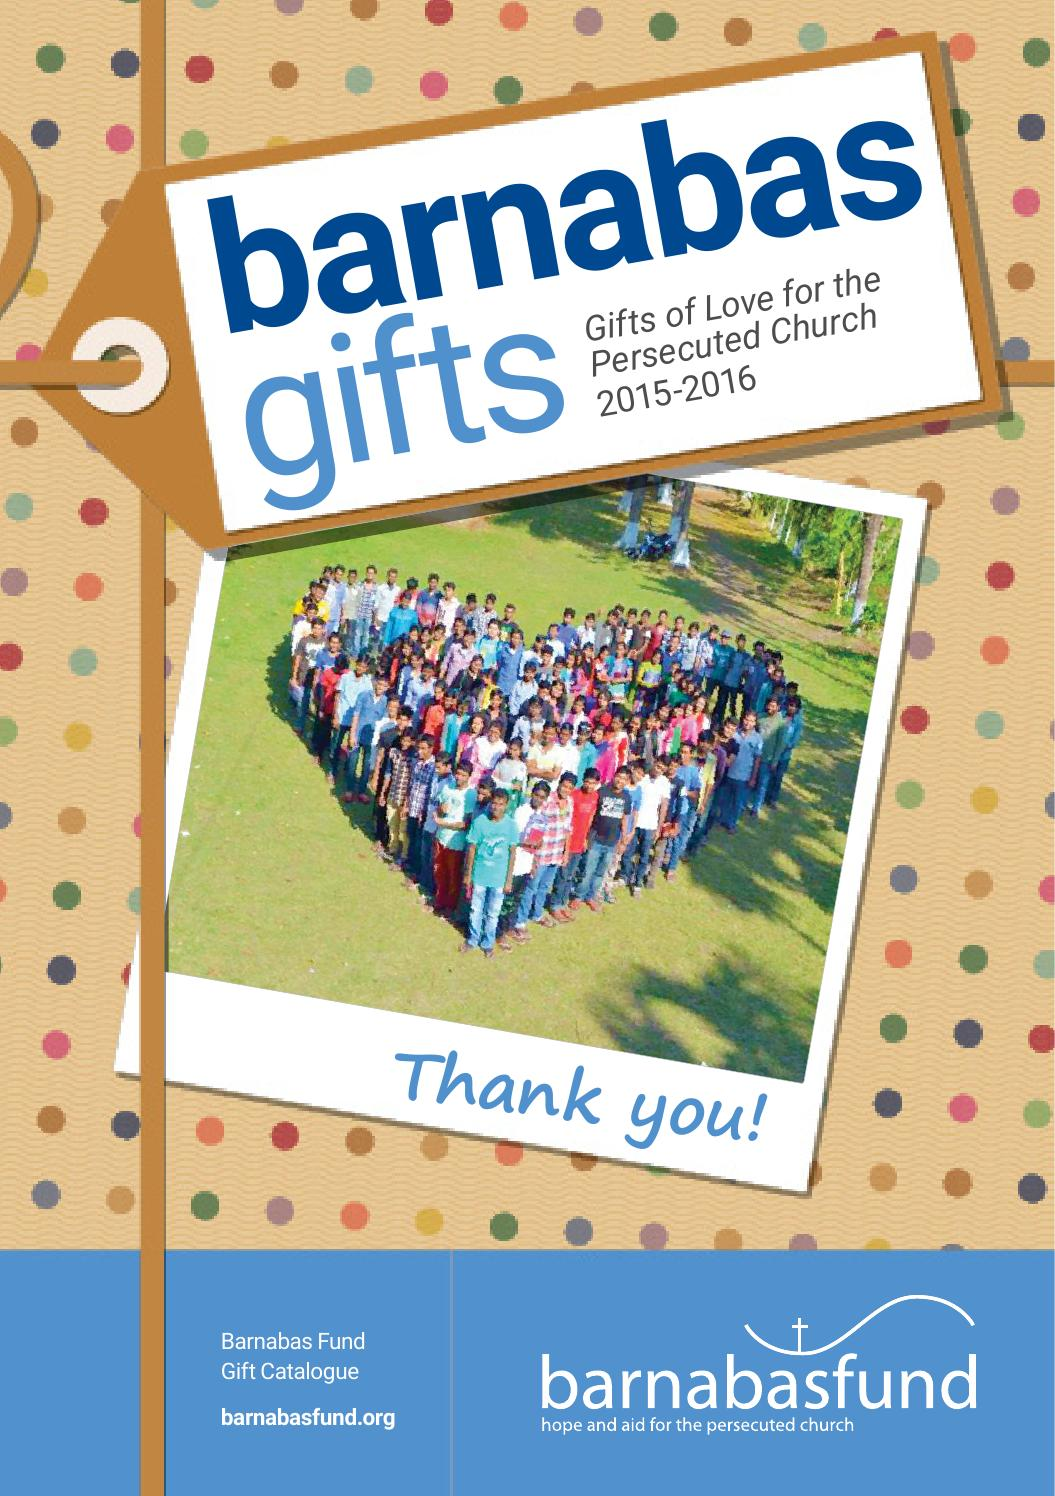 barnabas gifts 20152016 by barnabas fund issuu